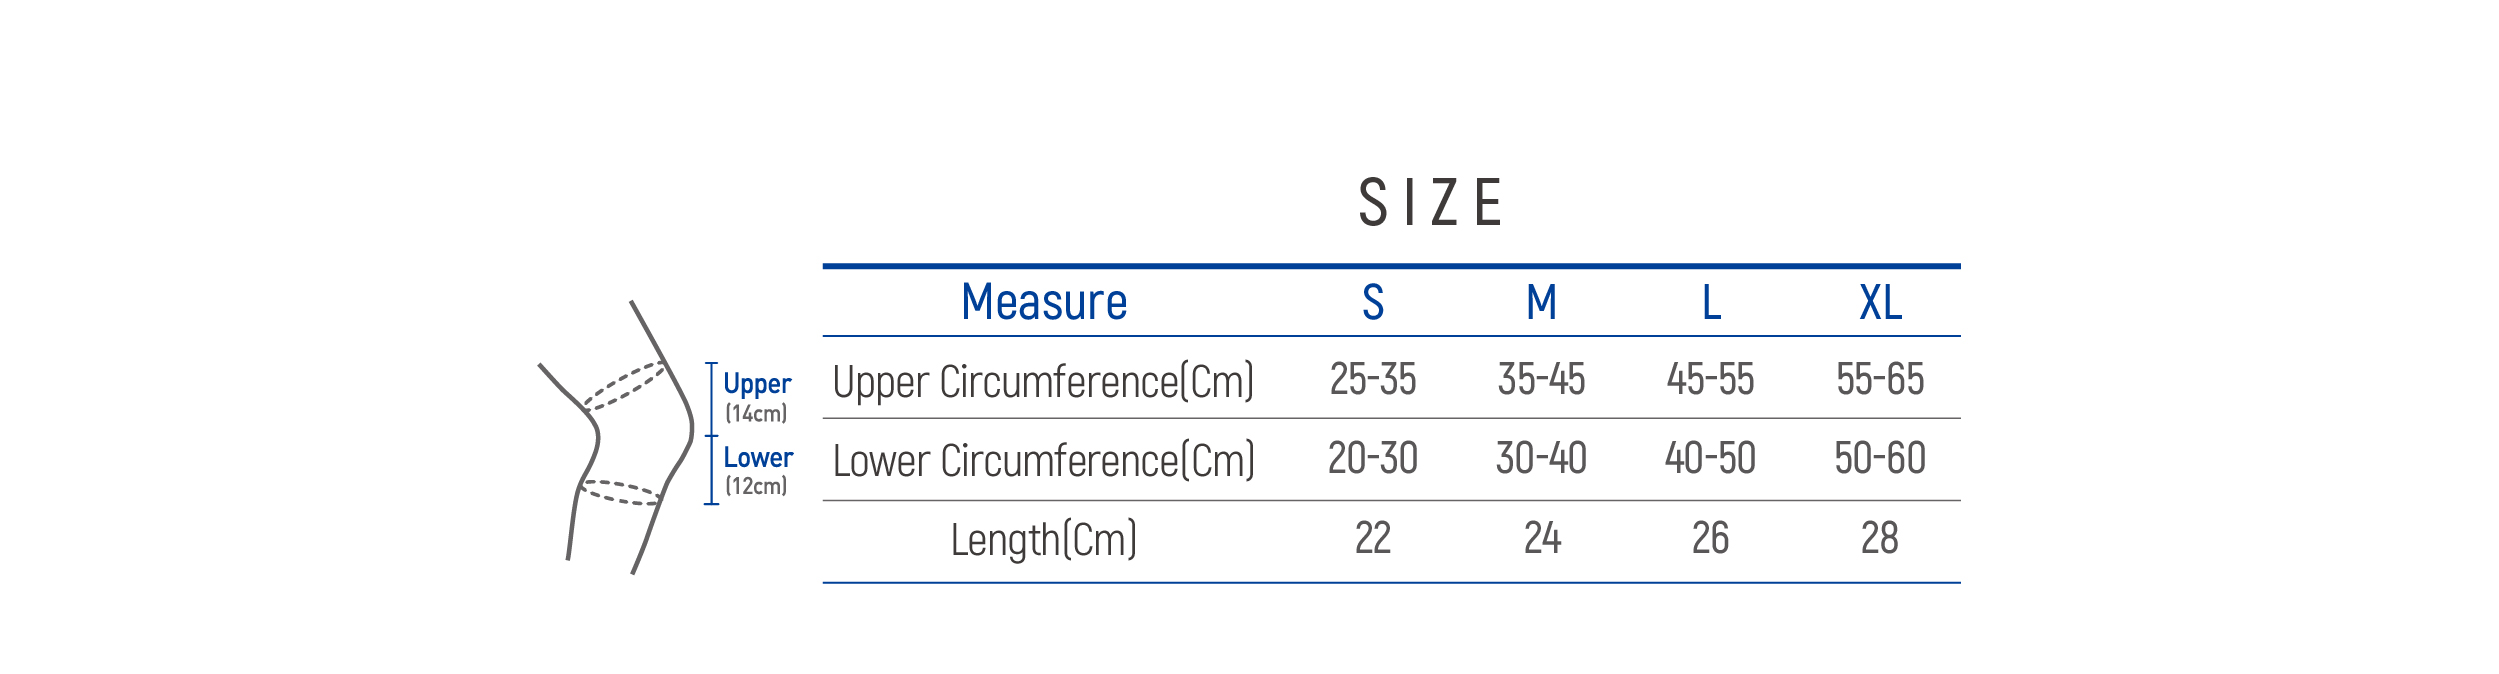 DR-K090 Size table image